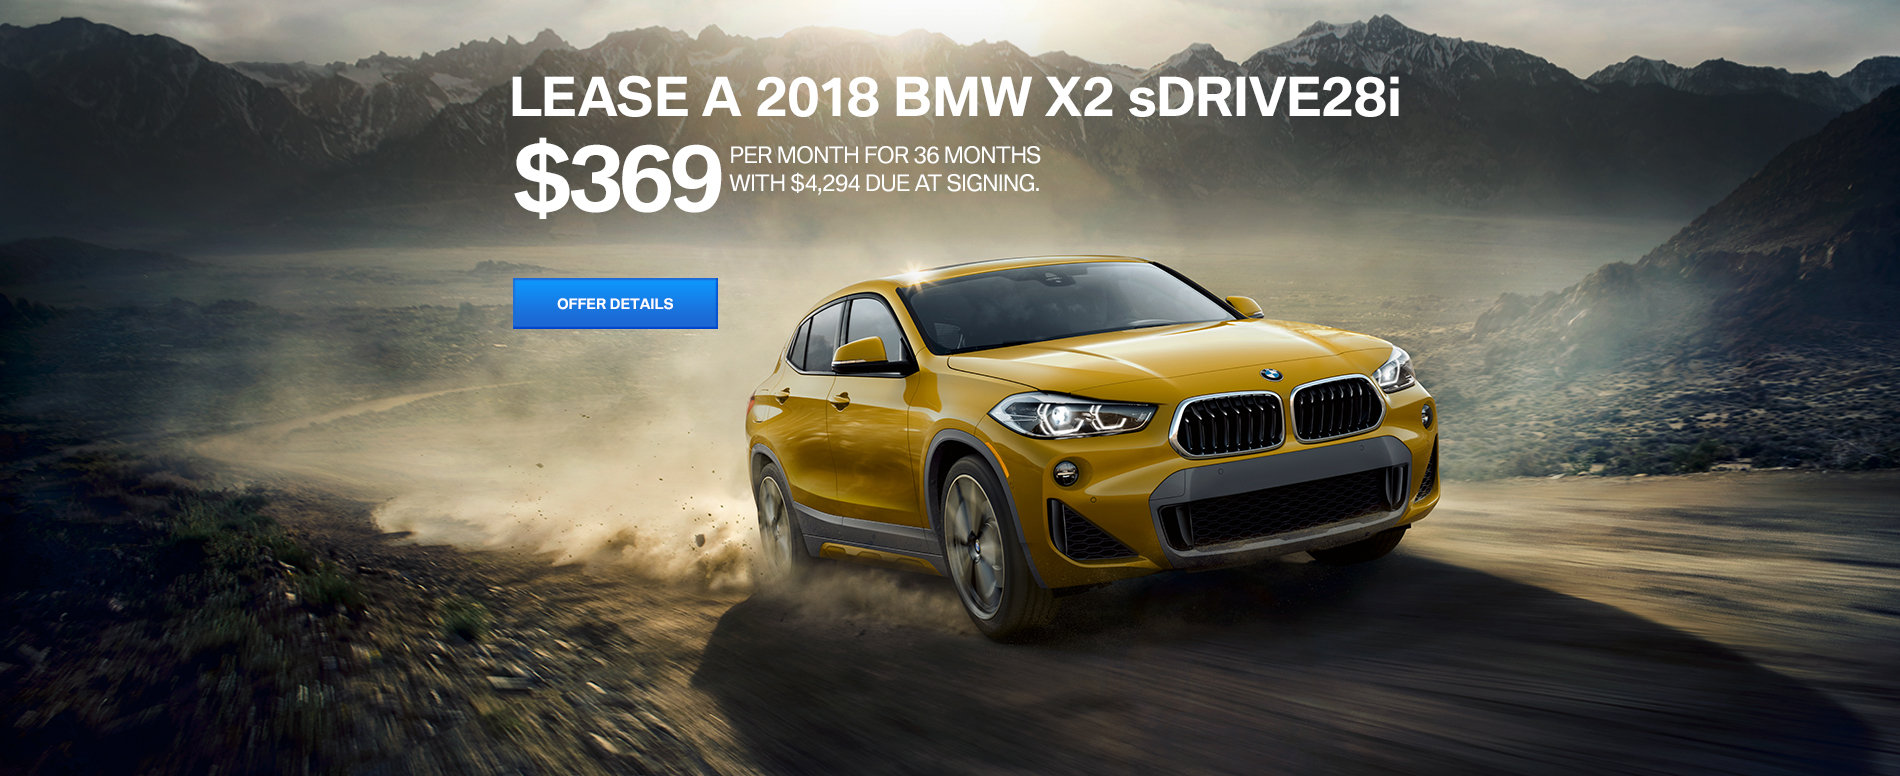 LEASE A BMW 2018 X2 sDRIVE28i FOR $369 /MO FOR 36 MONTHS.